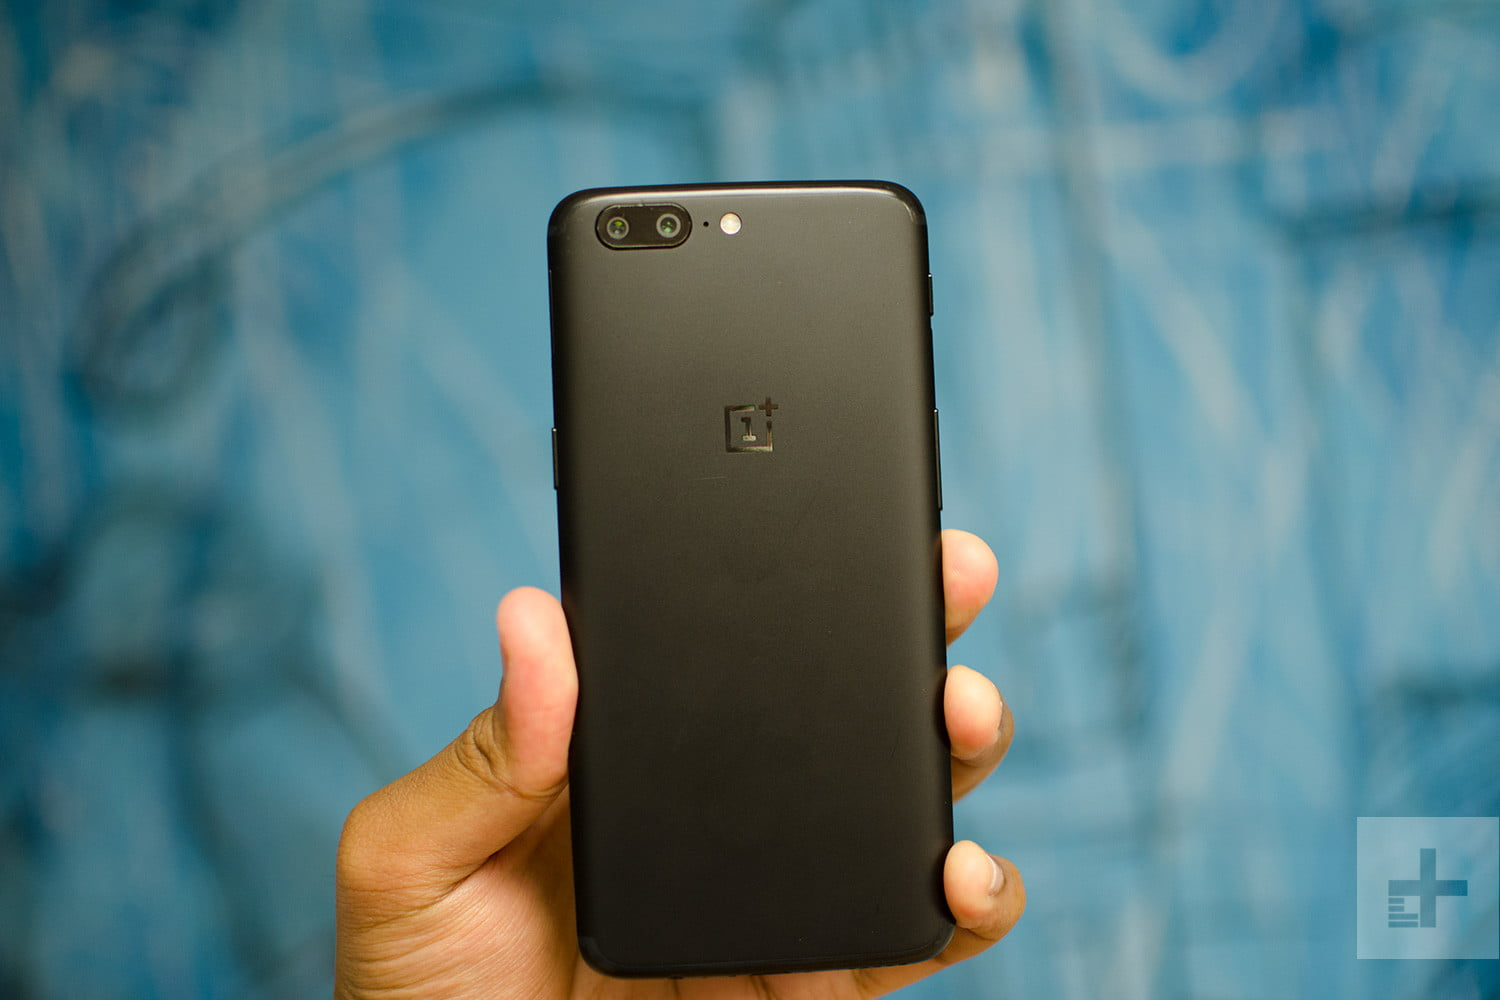 3. Use OnePlus's 'Find My Mobile' Beta Version to Track Your OnePlus